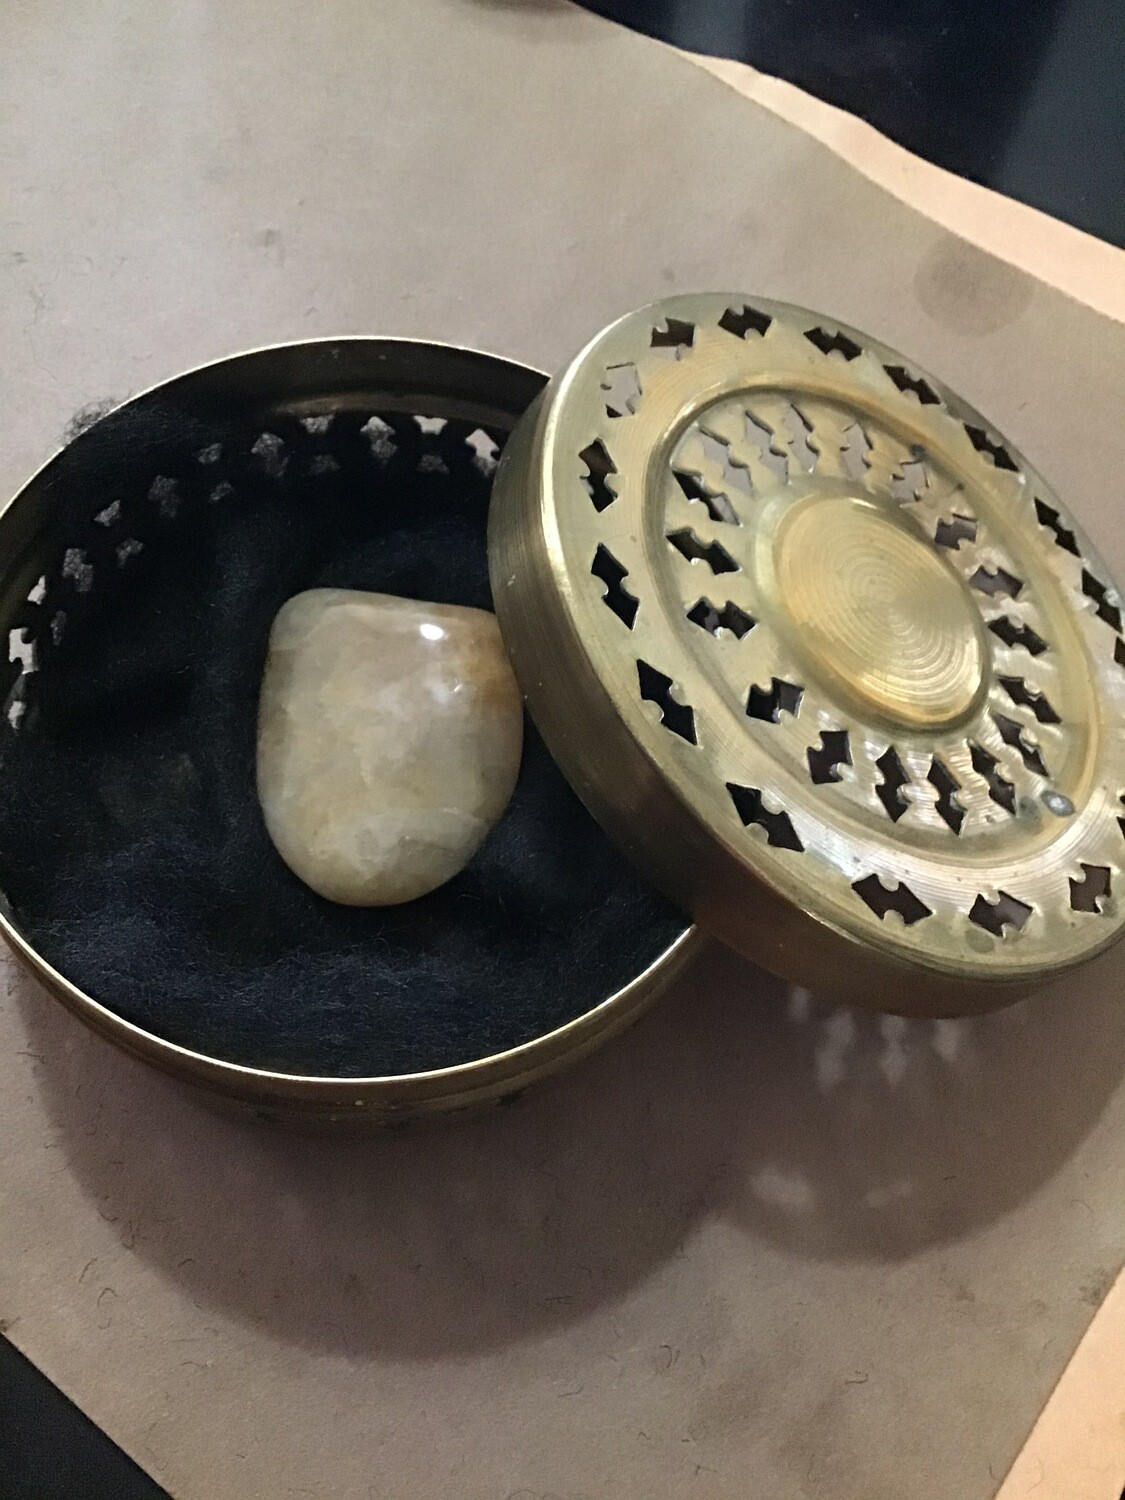 Medium Brass Vessel with Powerful Stone, Anoint Essence of the Soul, Out Of Body Experiences, Astral Projection